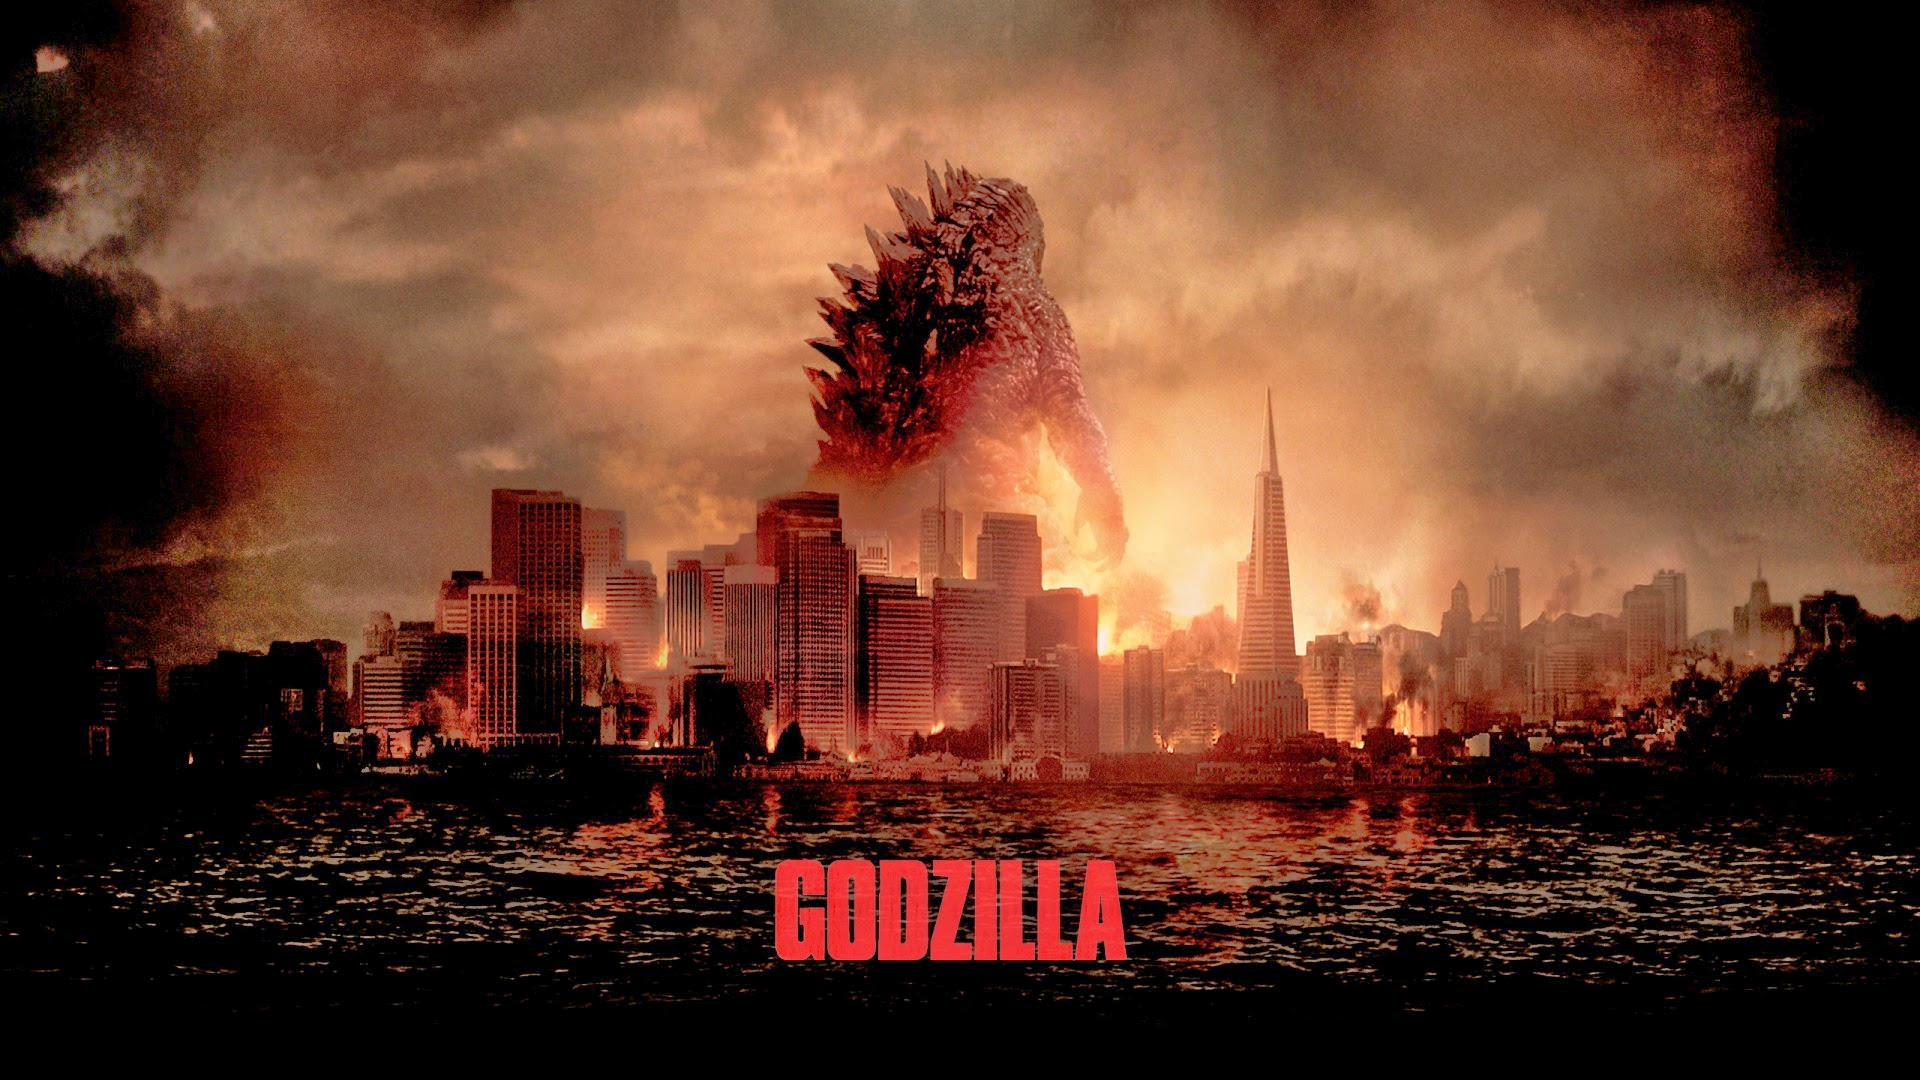 Godzilla 2014 Movie Wallpapers 16504 Wallpaper Wallpaper hd 1920x1080